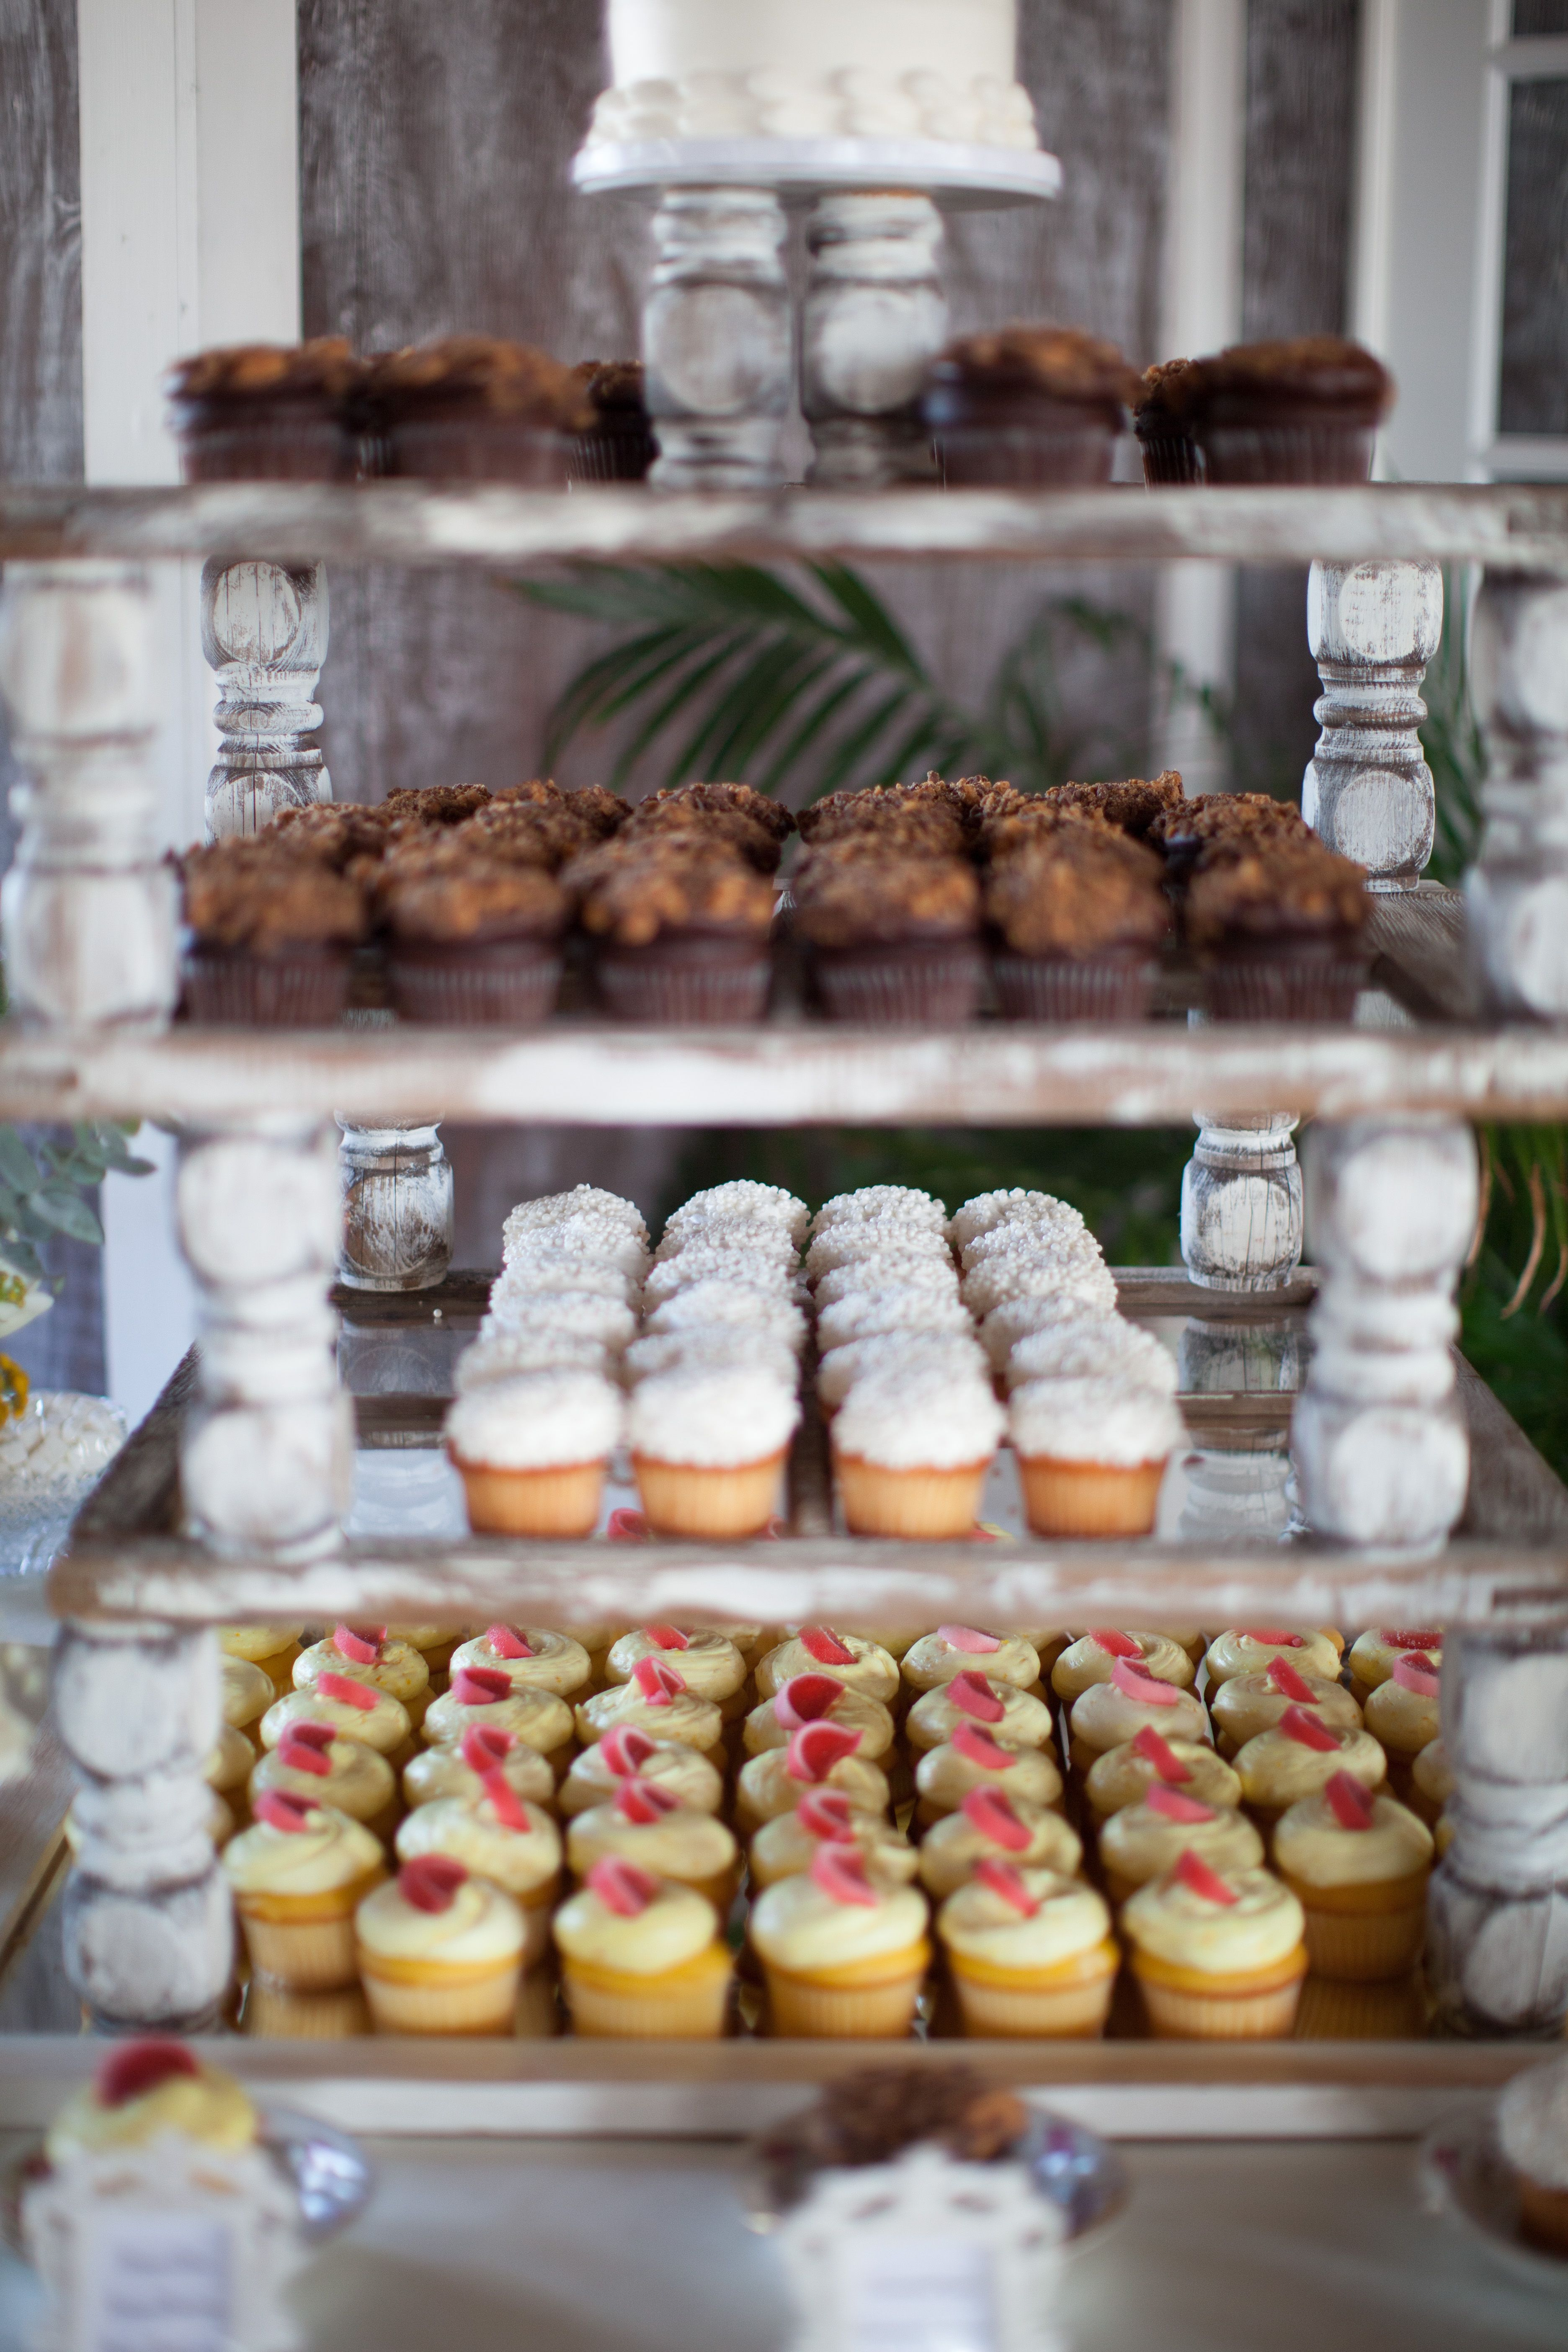 Cupcakes Instead Of Cake At The Wedding Reception Guests